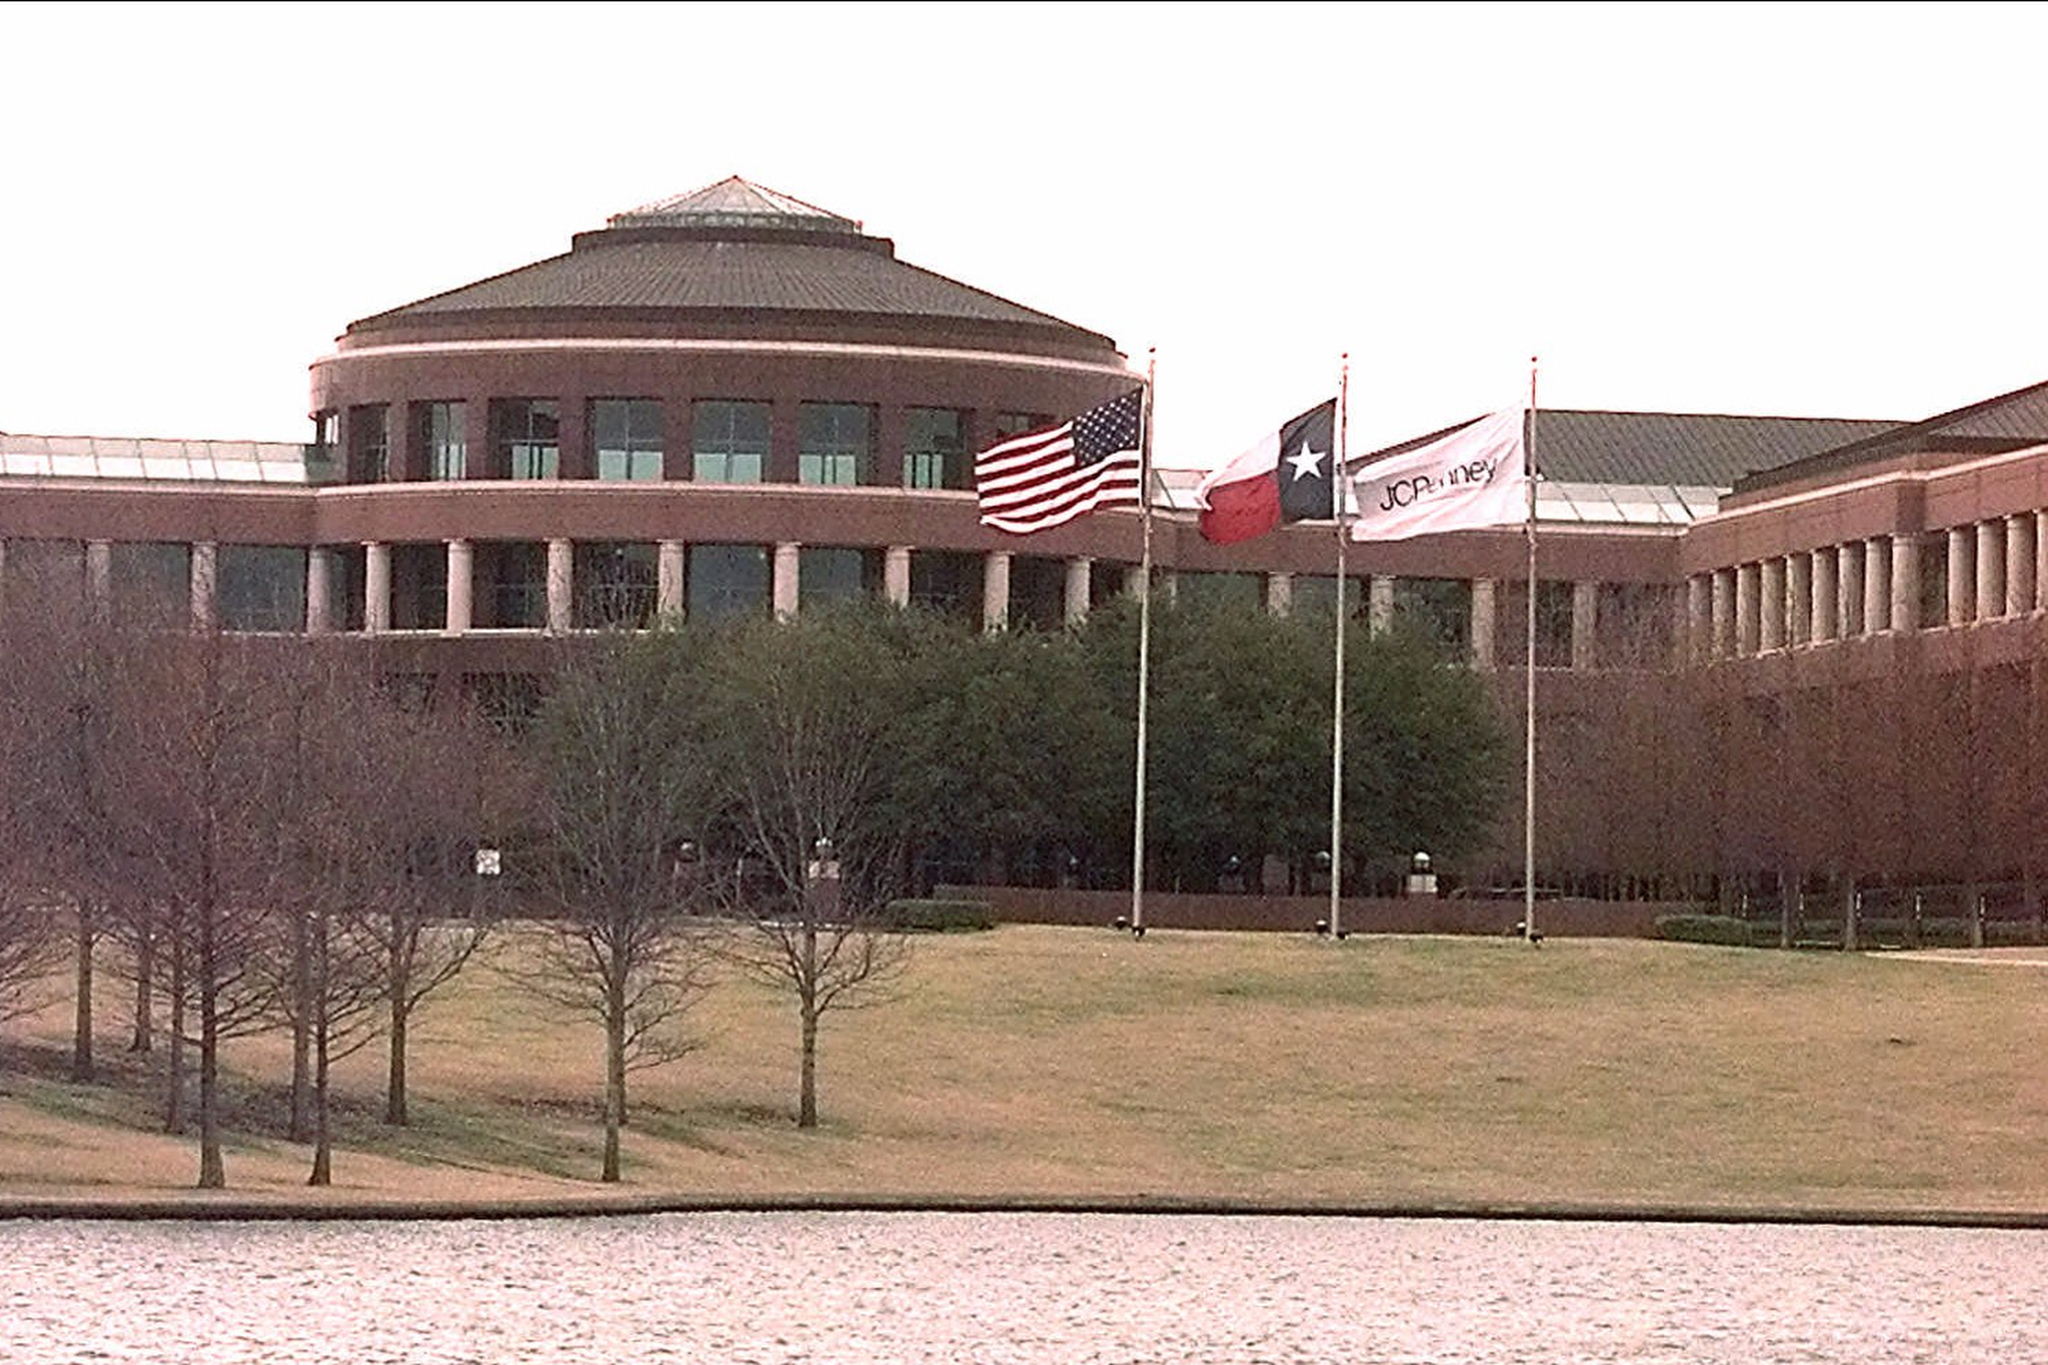 The sprawling J.C. Penney headquarters in Plano, Texas.